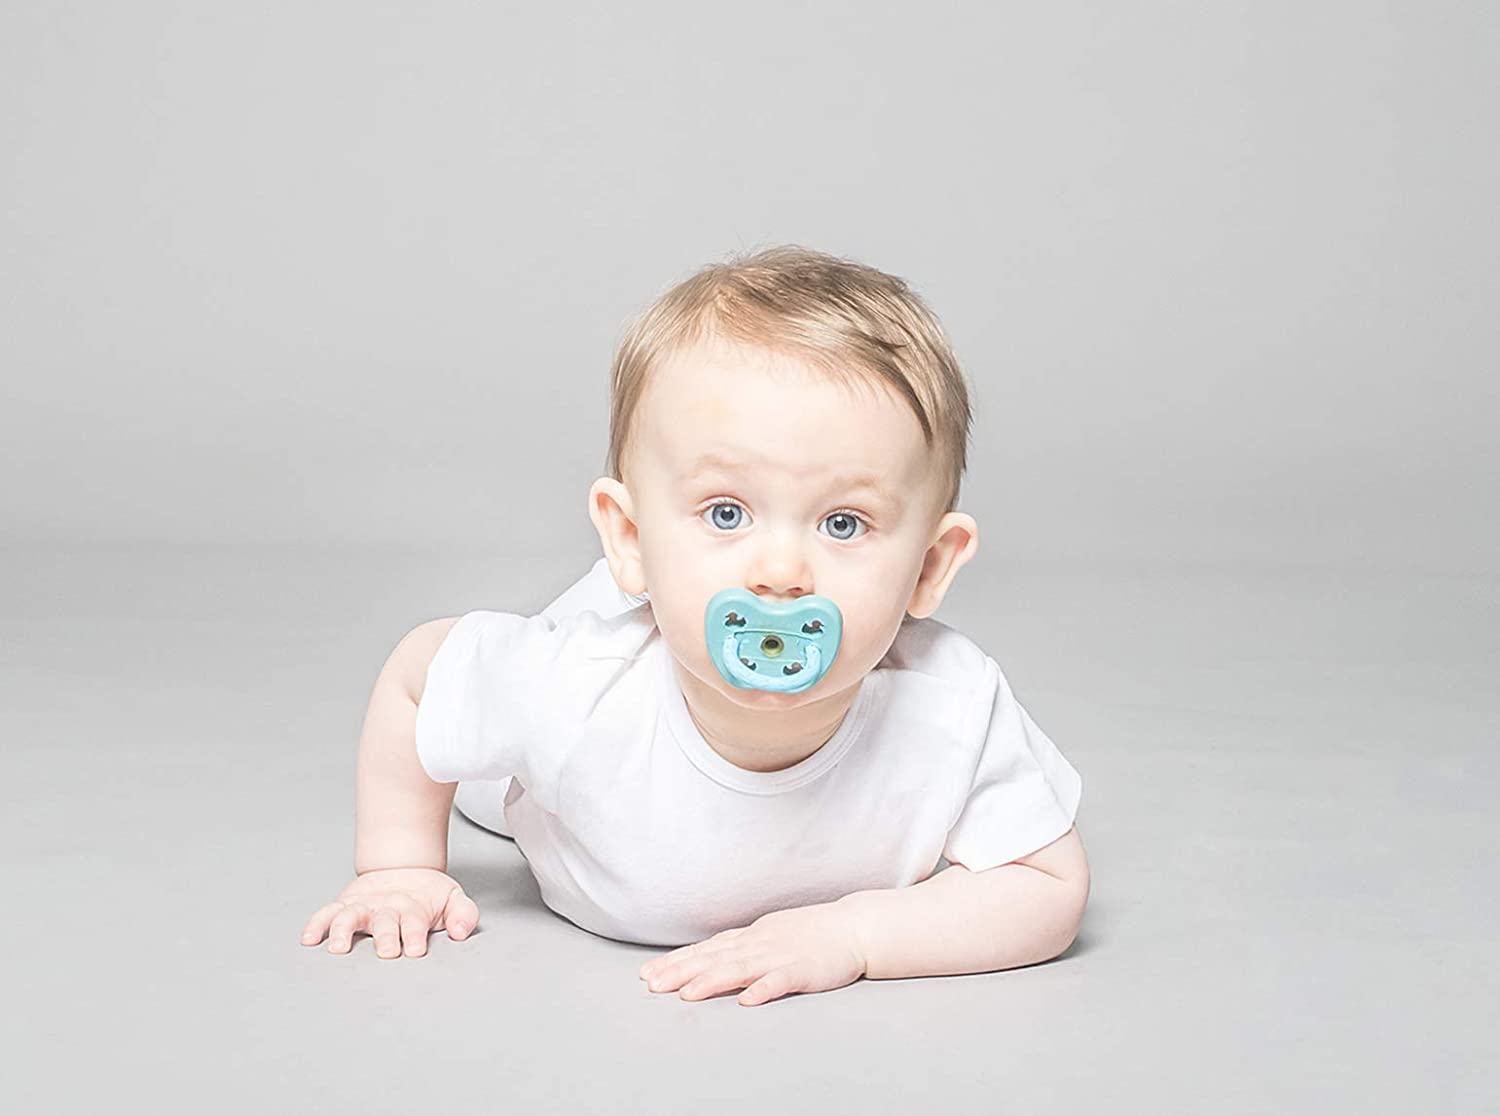 BPA-Free and Plastic-Free HEVEA Round Pacifier Made from Natural Rubber Shiitake Grey, 3-36 Months